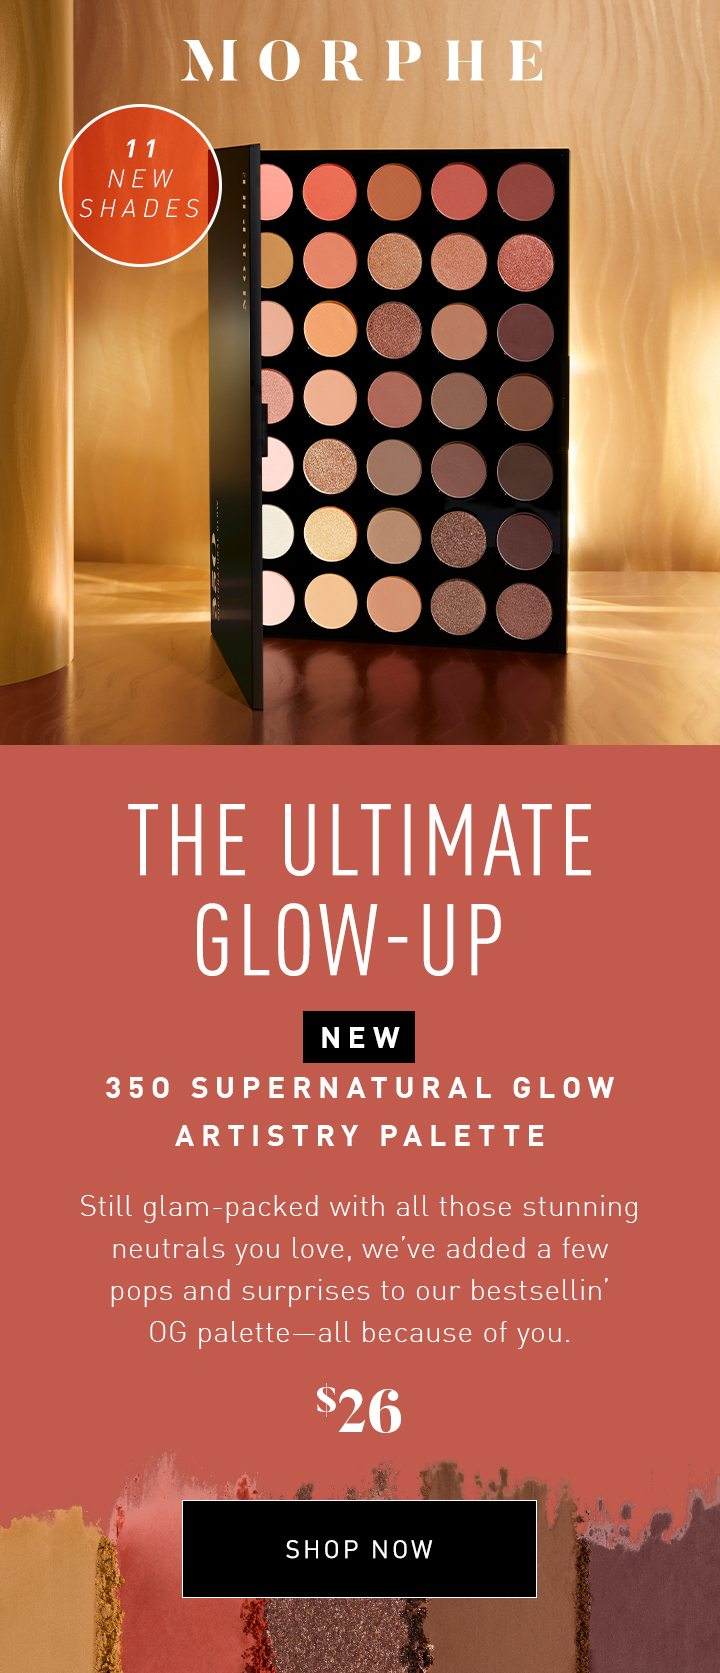 MORPHE THE ULTIMATE GLOW-UP NEW 35O SUPERNATURAL GLOW ARTISTRY PALETTE Still glam-packed with all those stunning neutrals you love, we've added a few pops and surprises to our bestsellin' OG palette—all because of you. 11 NEW SHADES $26 SHOP NOW